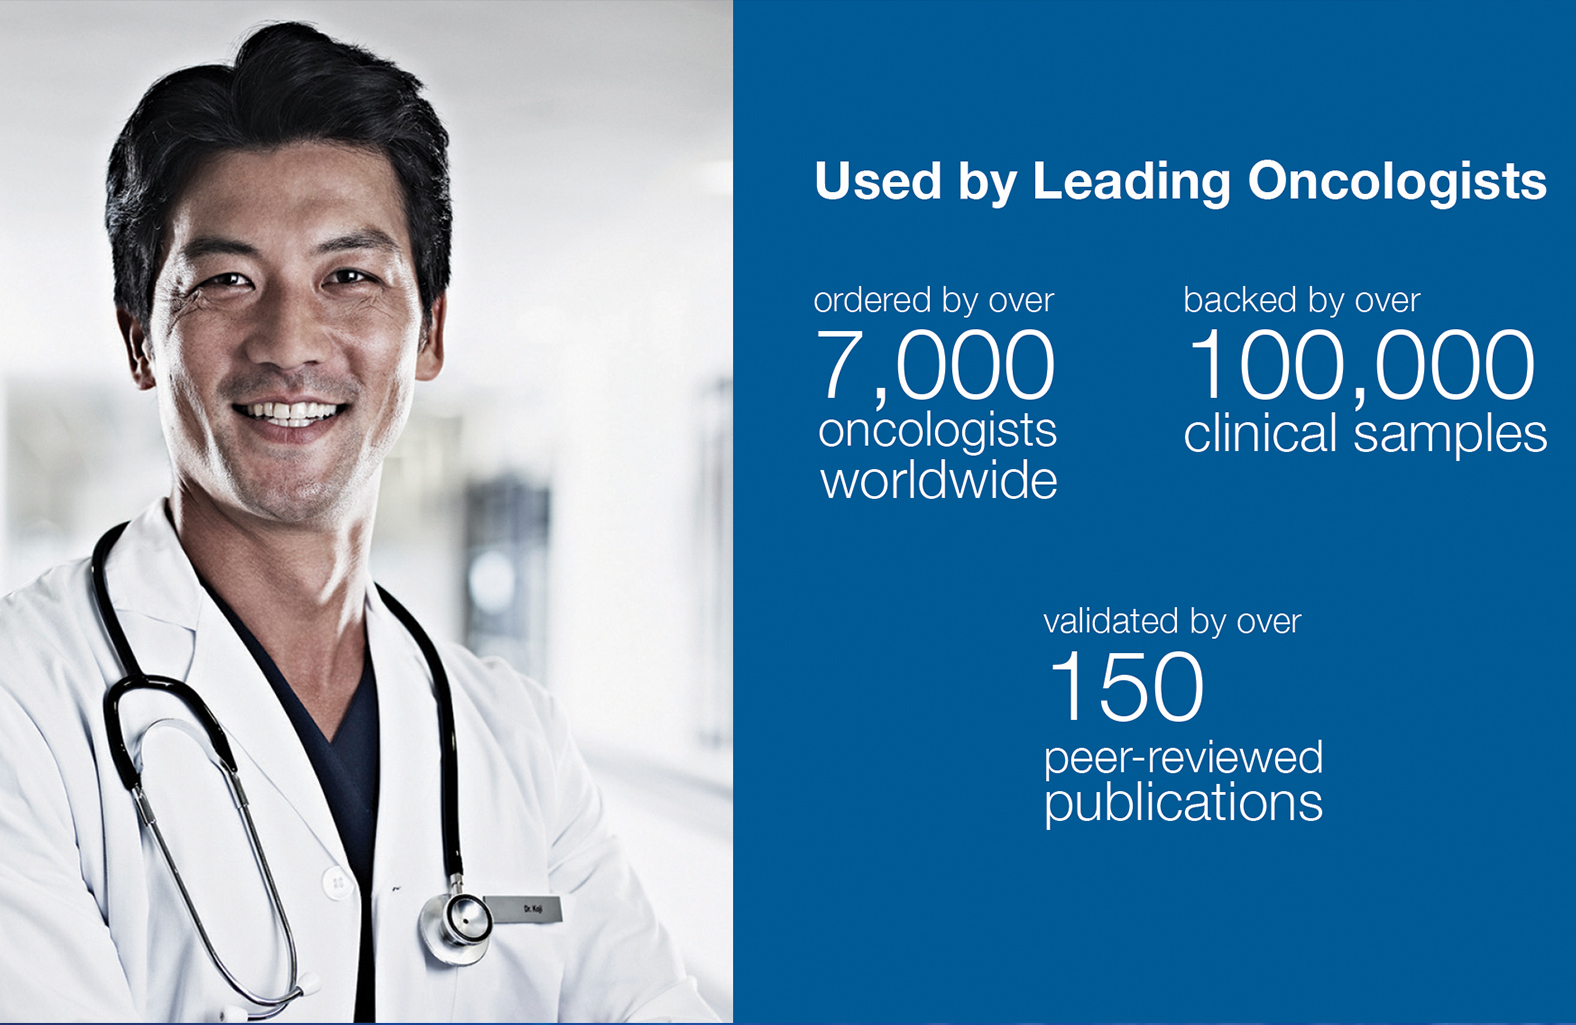 The Guardant360® test has been ordered over 100,000 times by more than 7,000 oncologists worldwide and has been validated in over 150 peer-reviewed publications